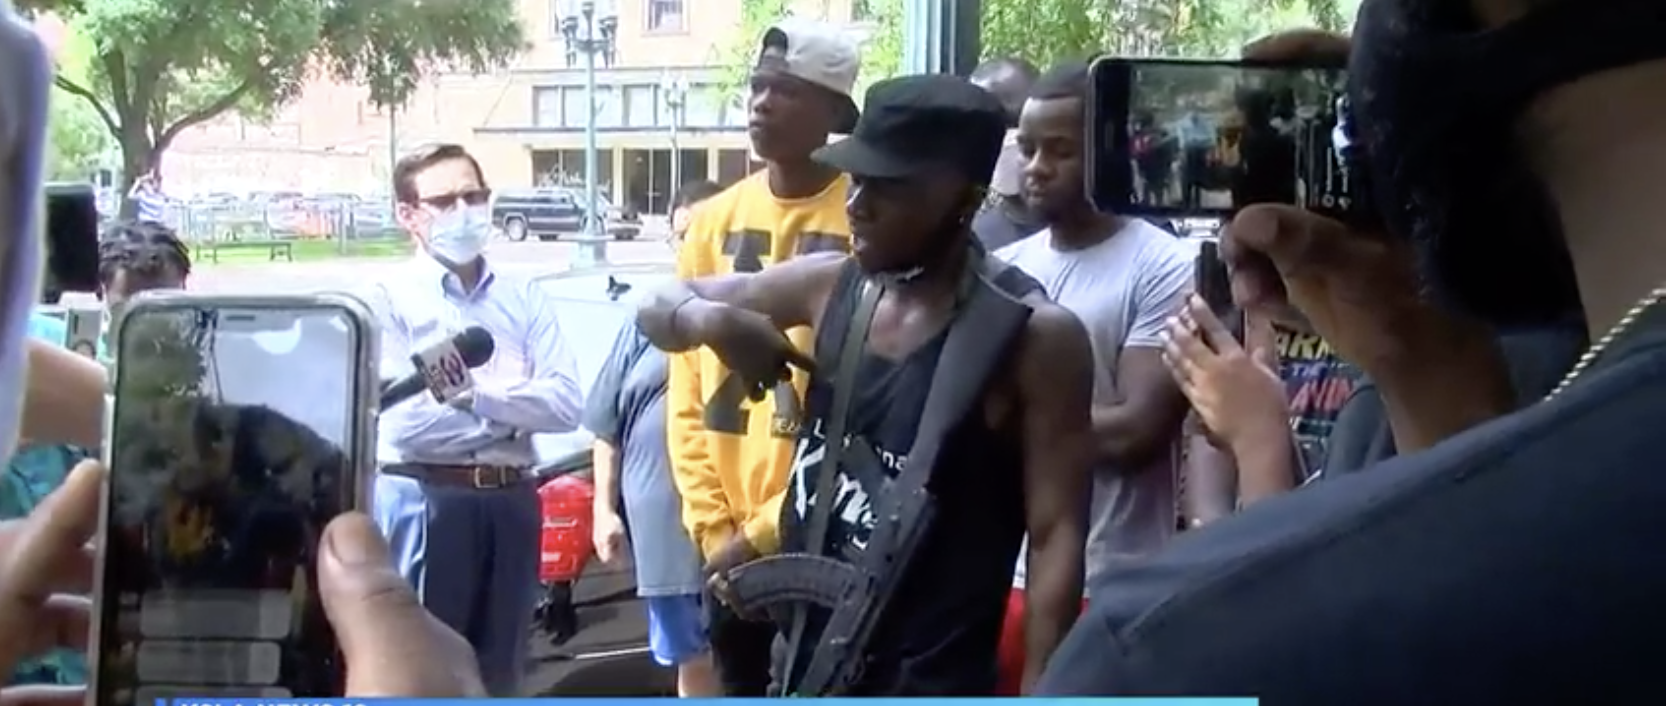 Armed Black Men Show Up To Hearing On Confederate Statues To Protect Black Women